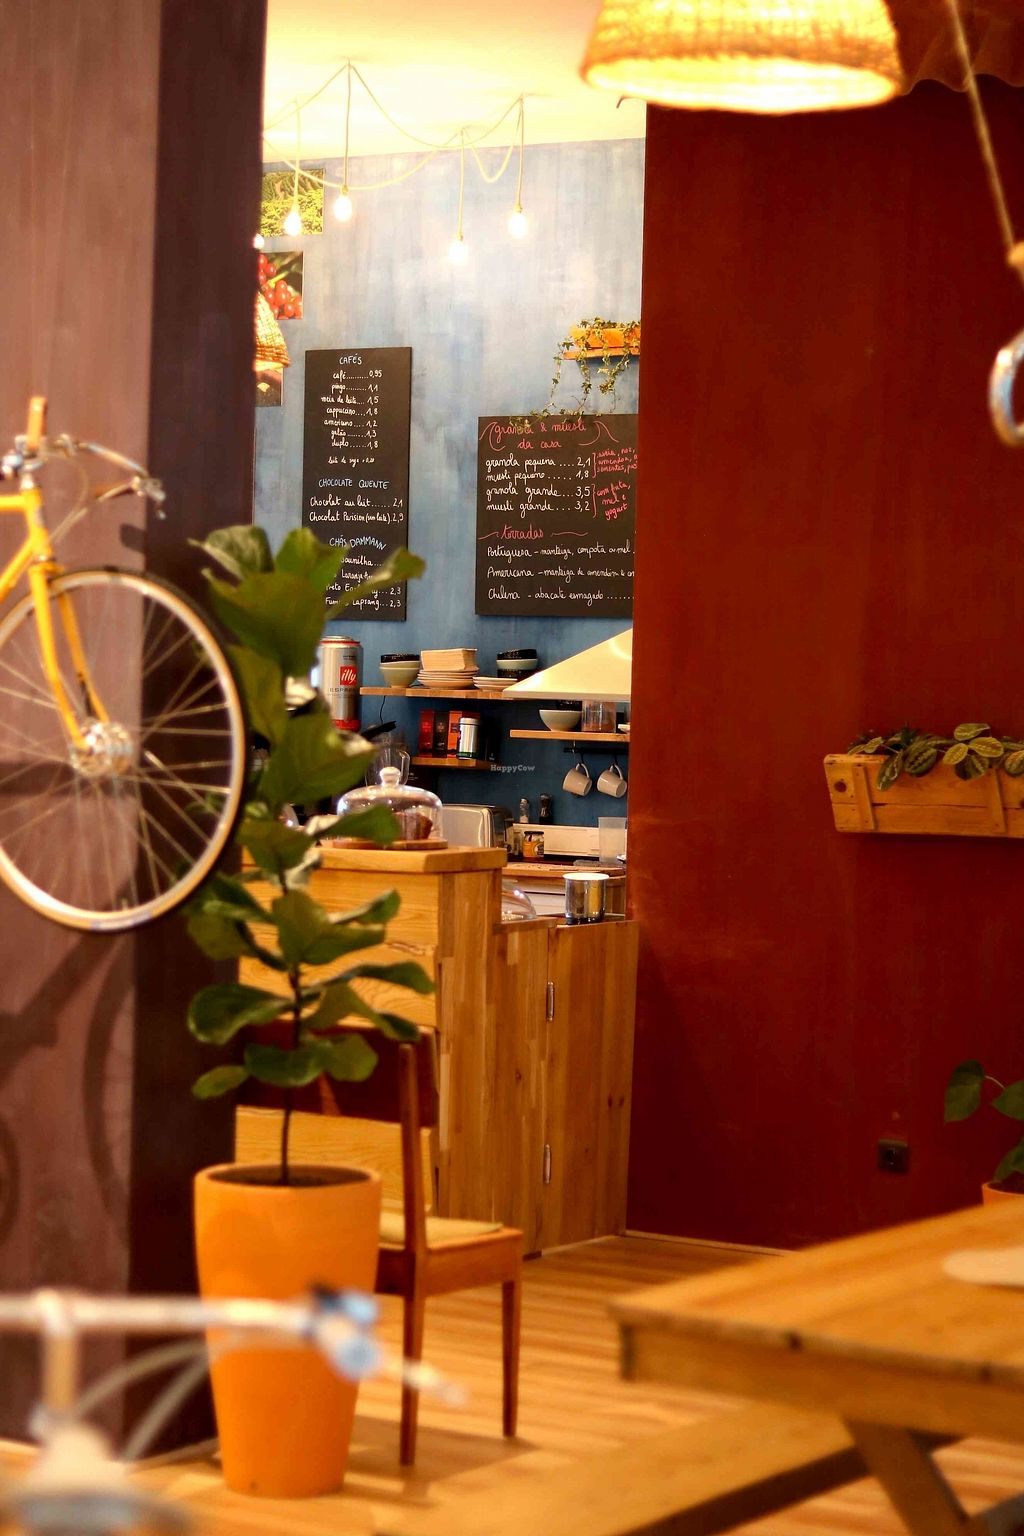 "Photo of Chelo Coast House  by <a href=""/members/profile/Chelocoasthouse"">Chelocoasthouse</a> <br/>A little view of our bar, a lot of surprises in there. 